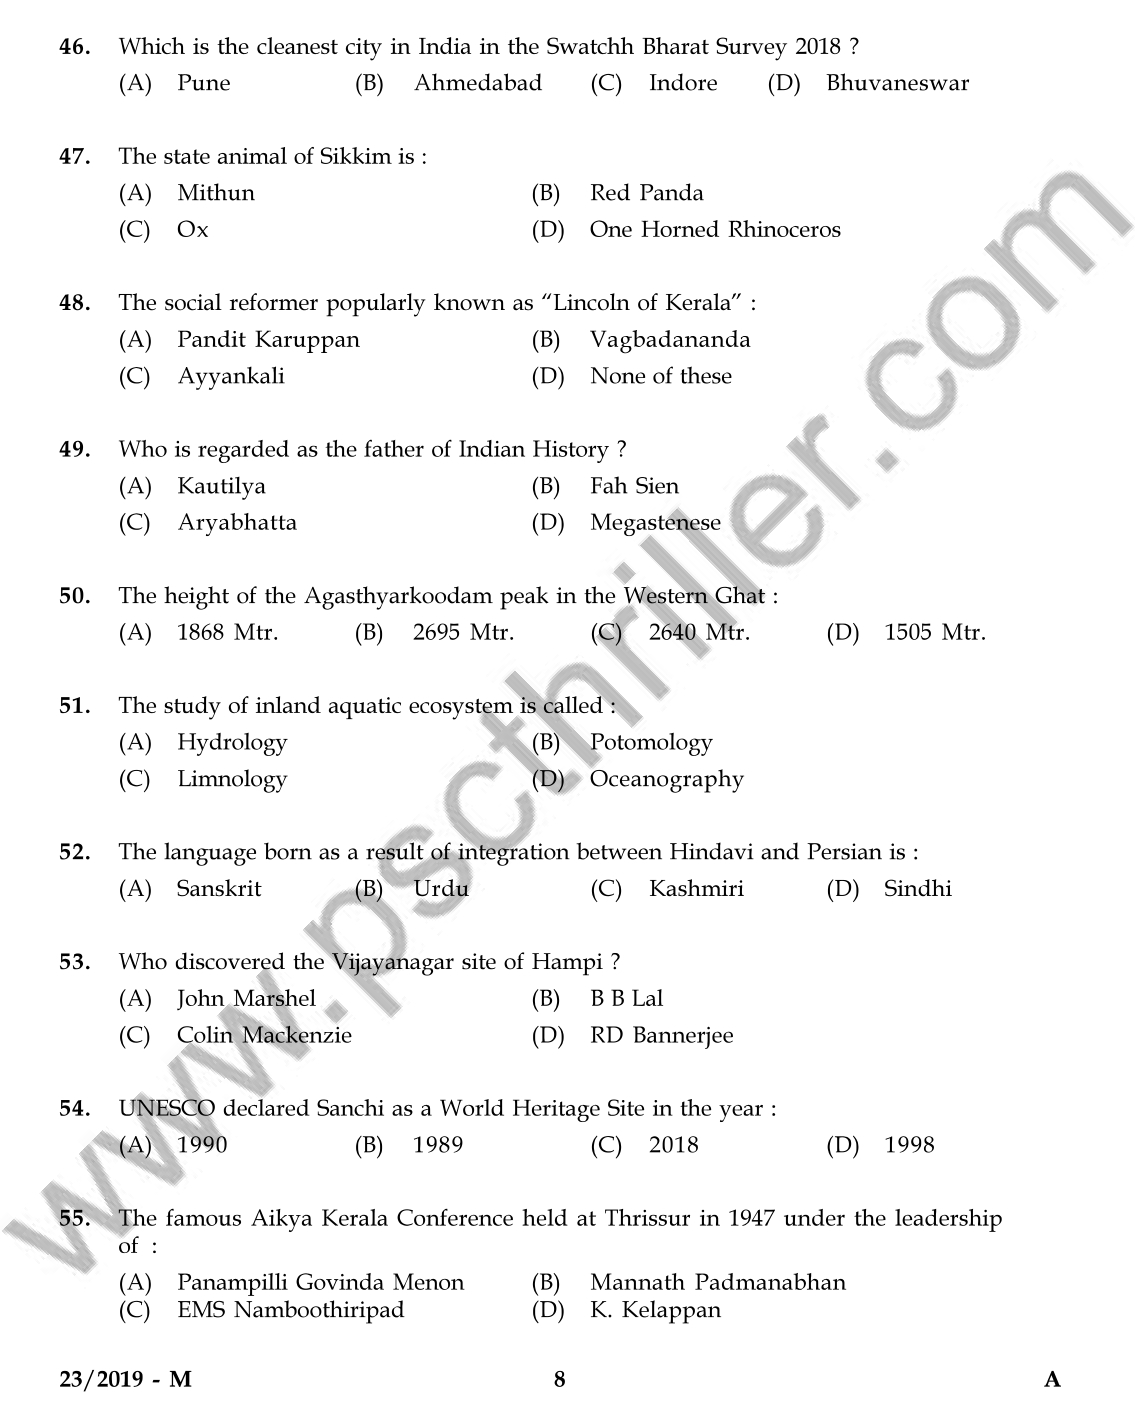 Senior Superintendent-Question Paper-23/2019-KERALA PSC